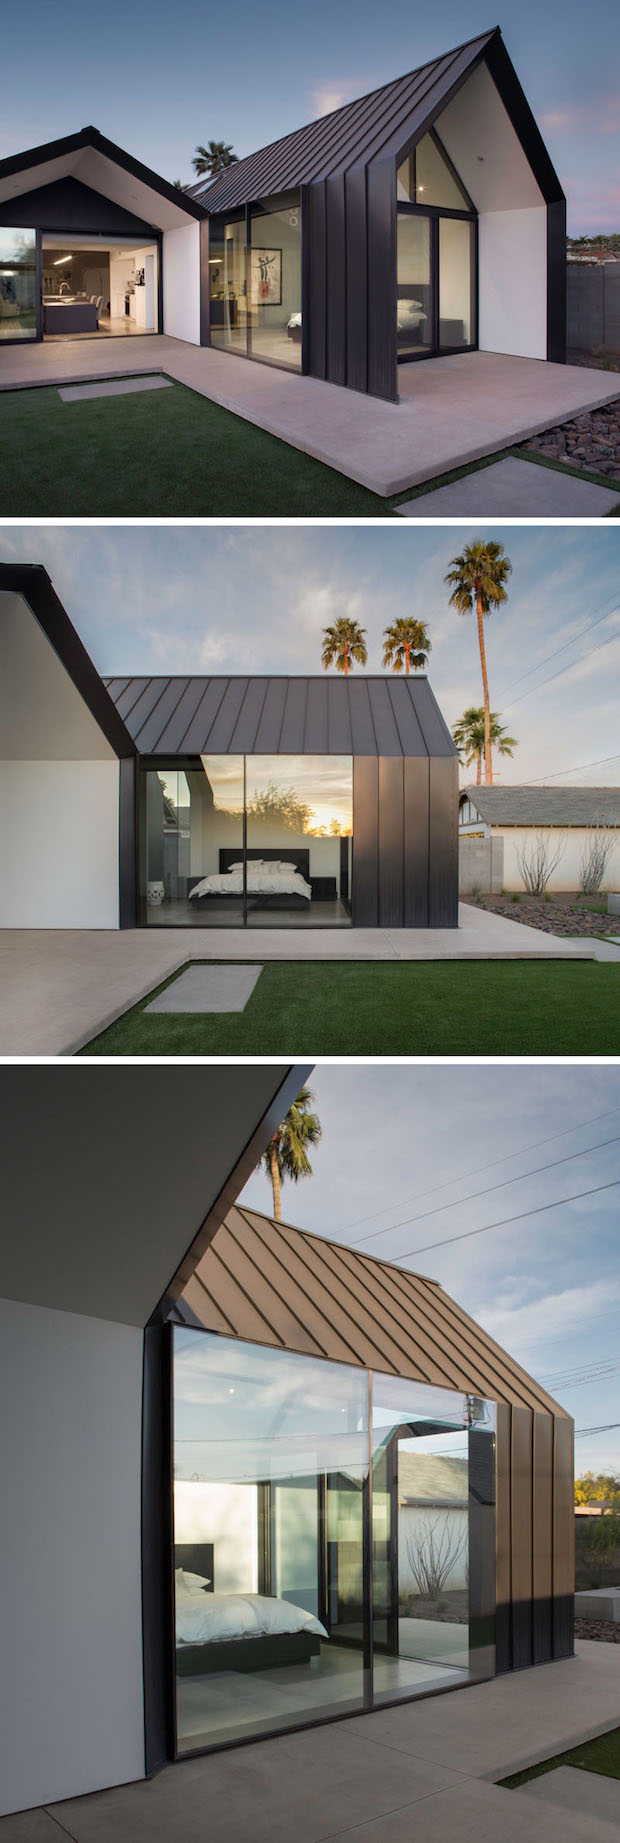 contemporary-house-extension-261116-1220-03.jpeg (620×1843)